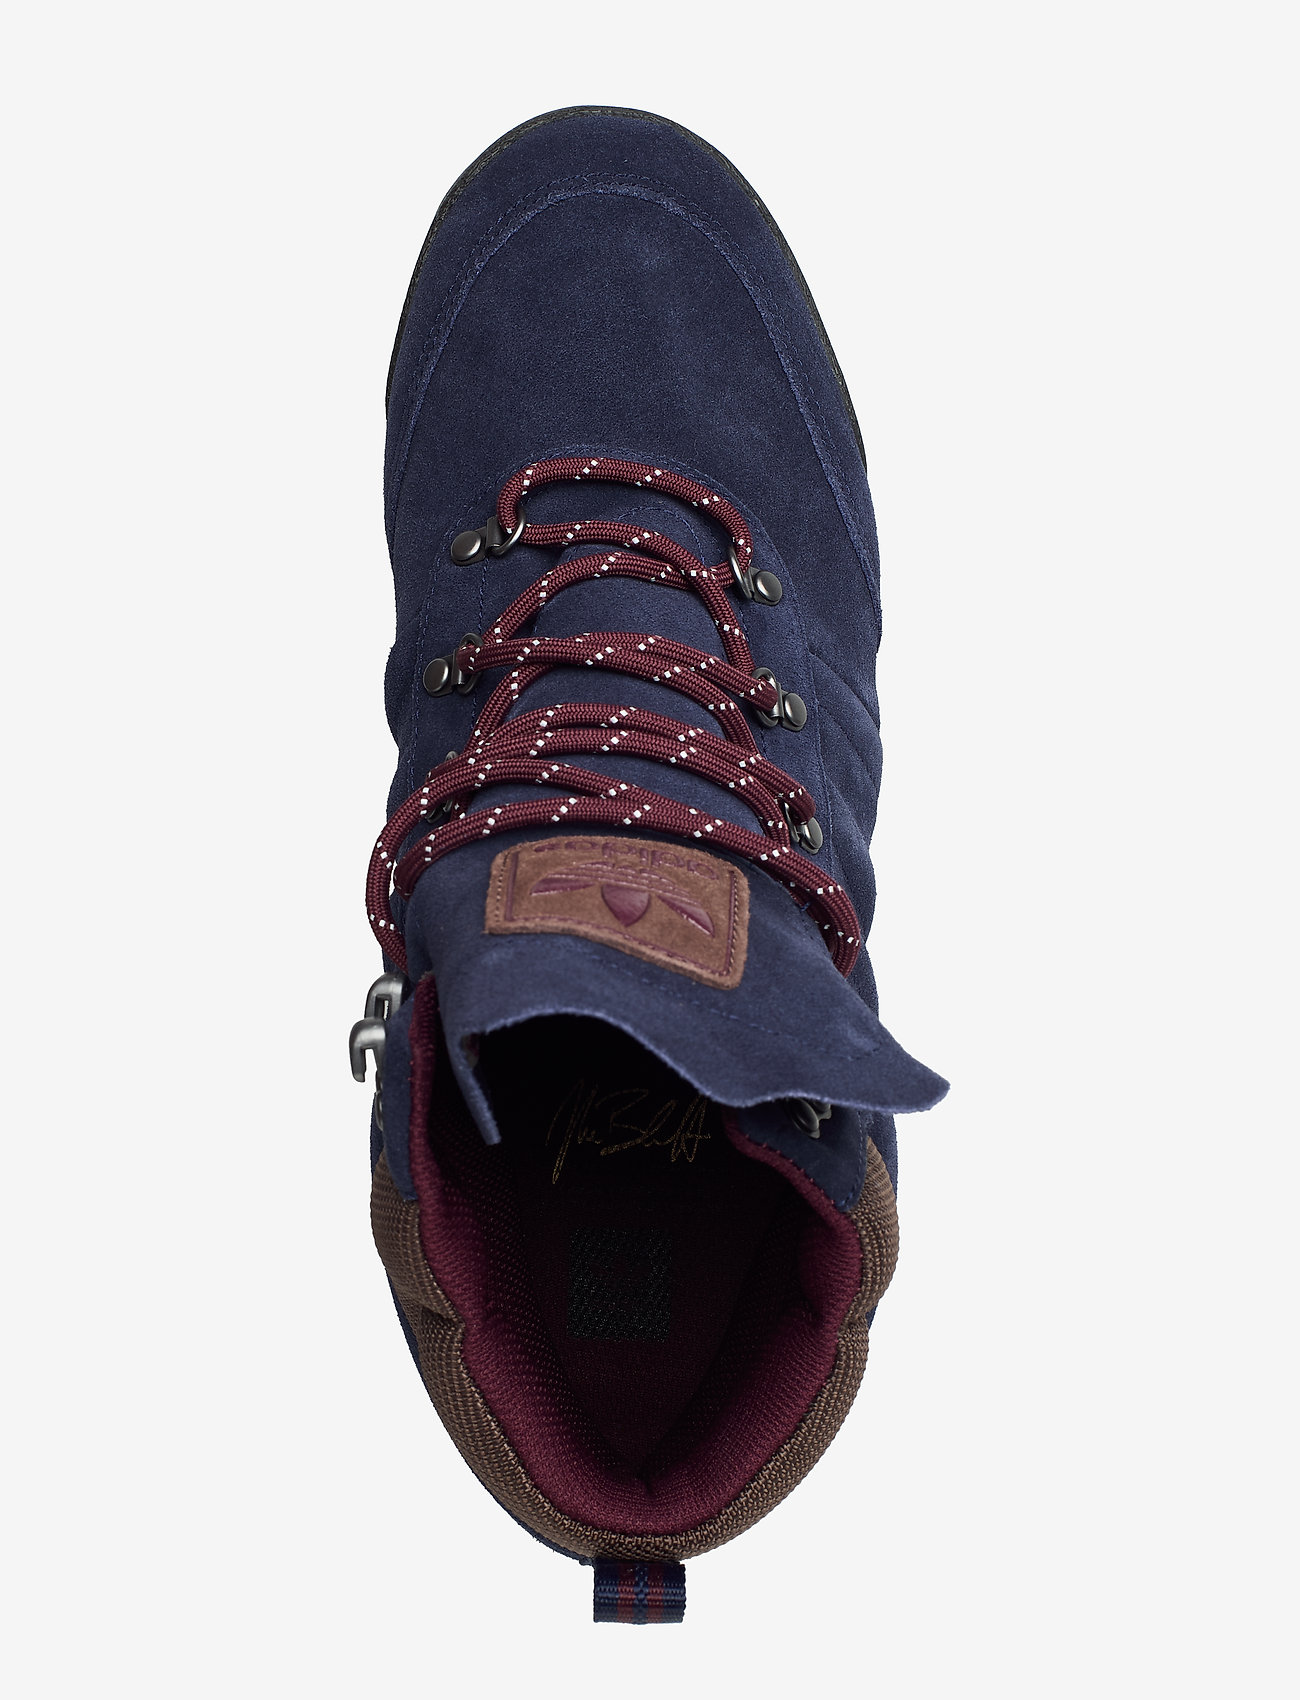 Jake Boot 2.0 (Conavy/maroon/brown) - adidas Performance